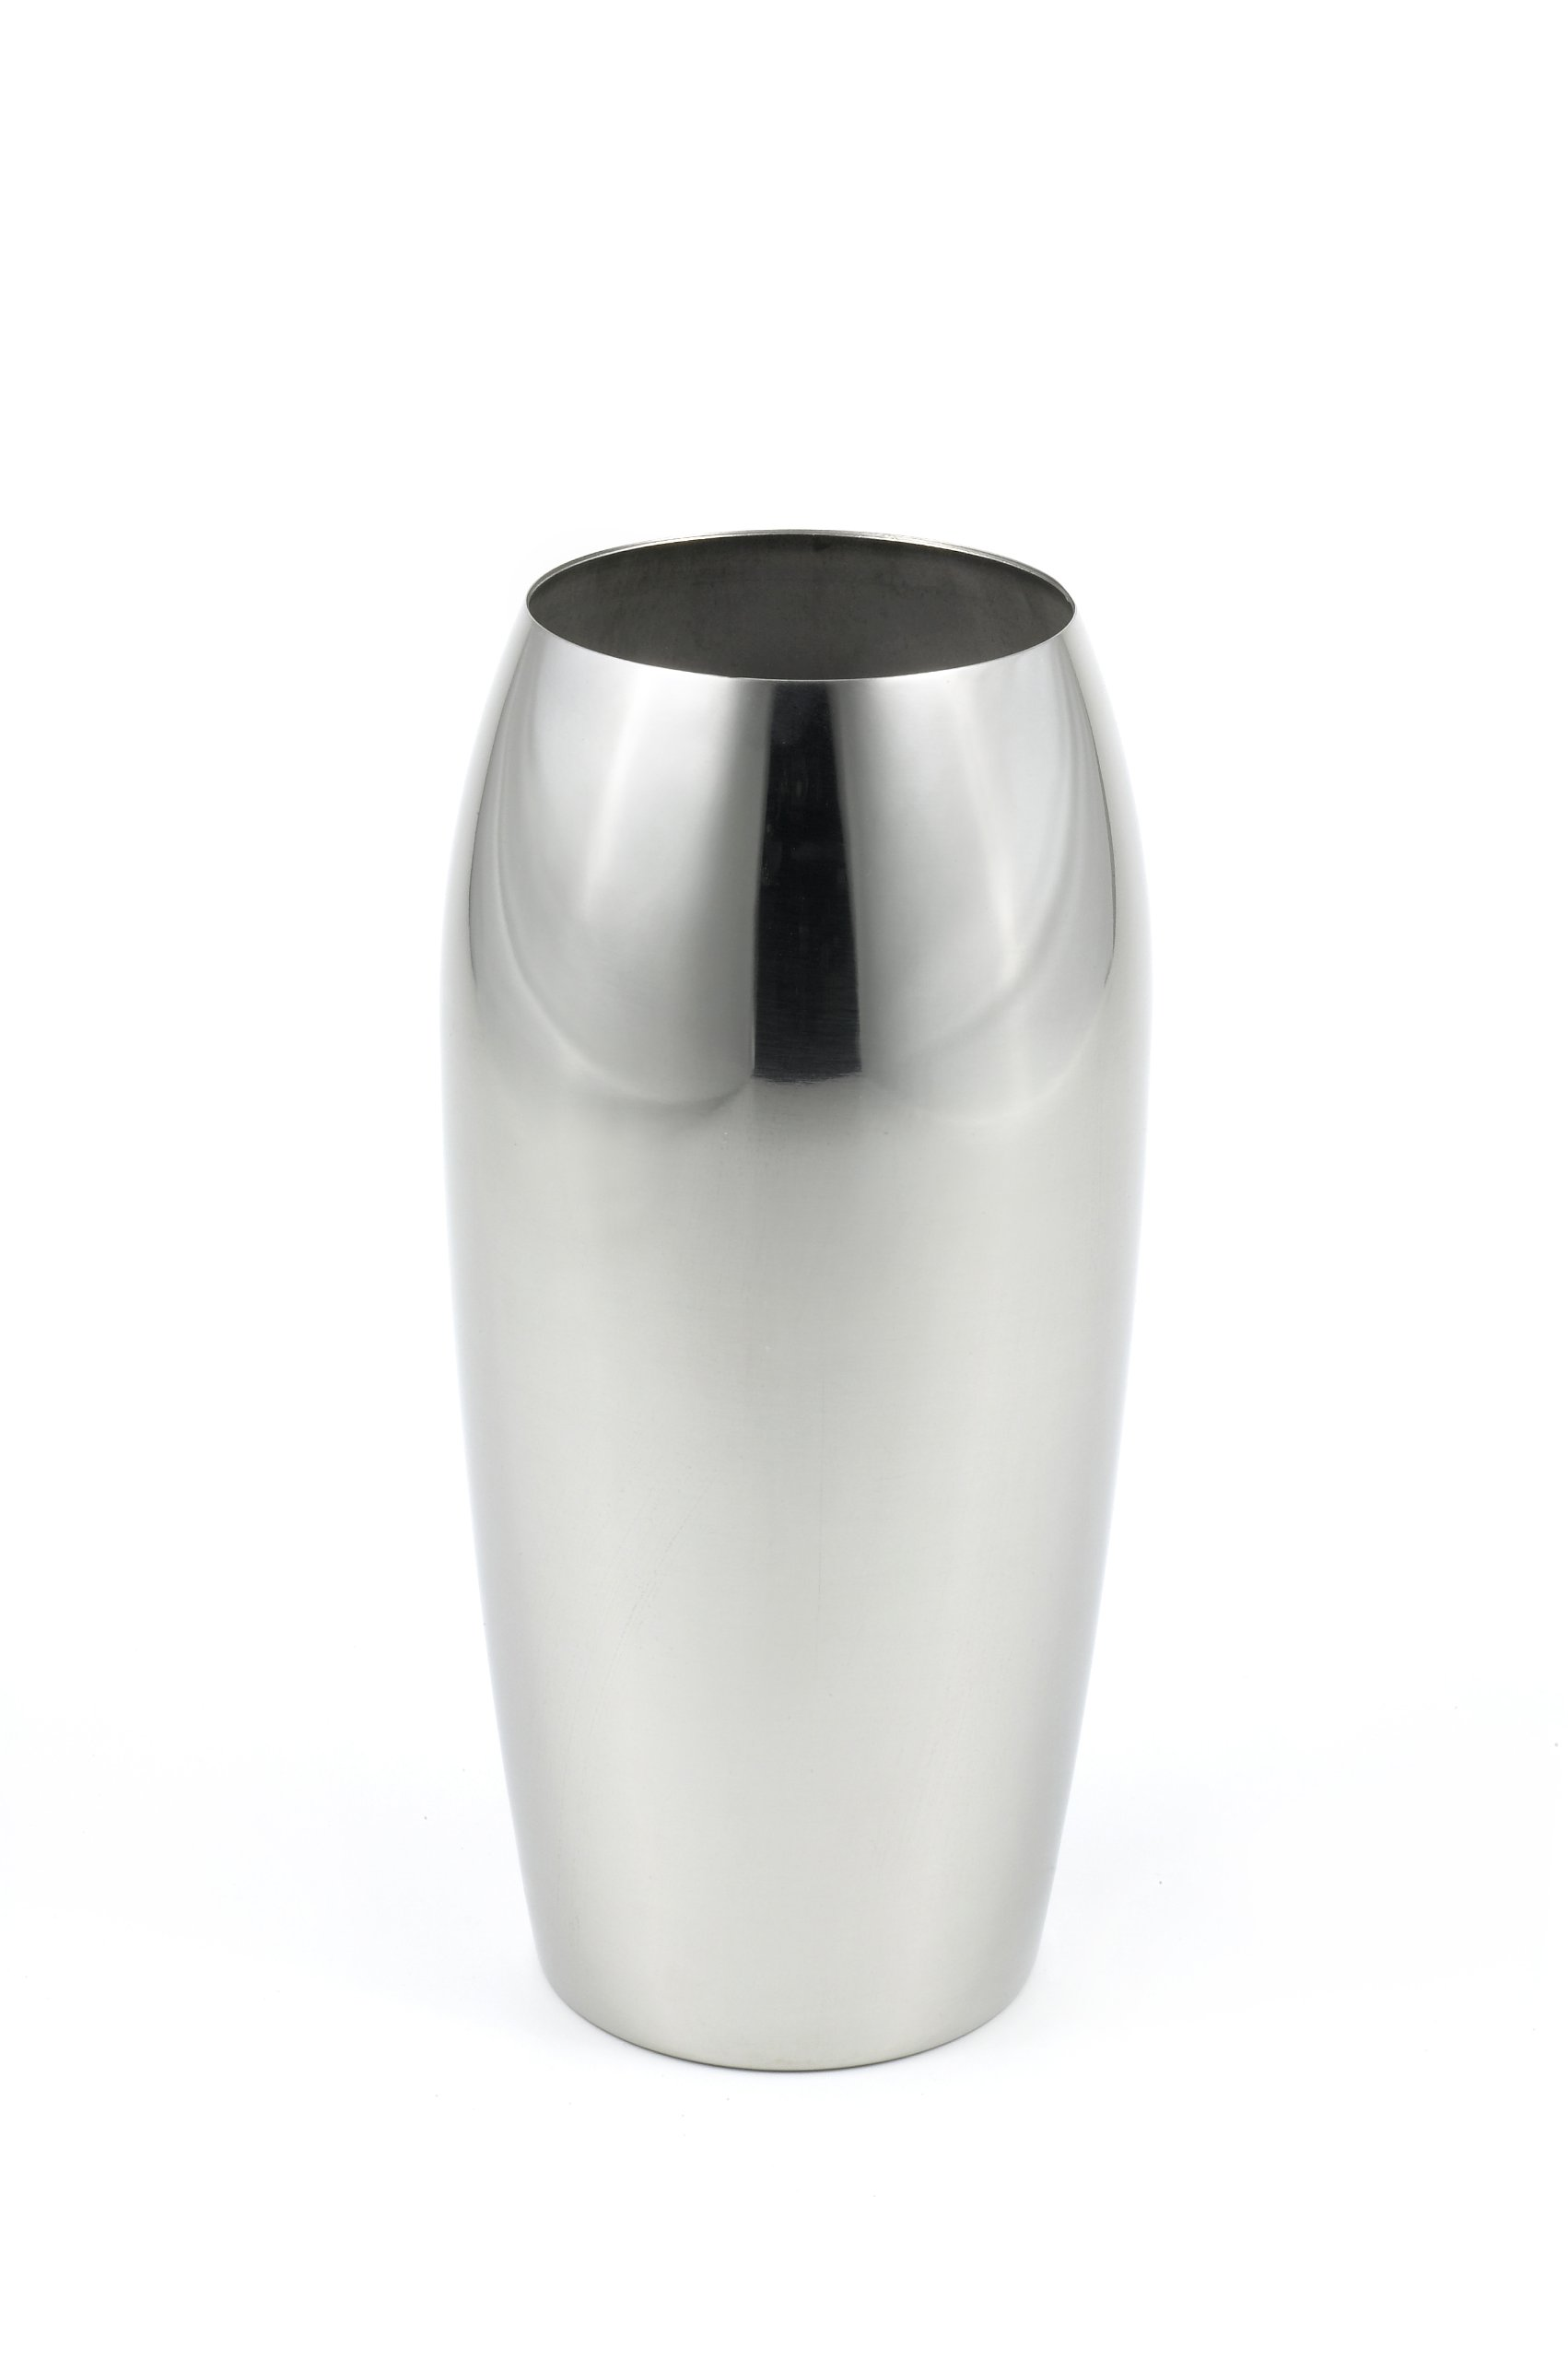 StainlessLUX 72202 Brilliant Oblong Stainless Steel Flower Vase, 4.6 Inches Diameter x 9.4 inches Height - Brilliant Reflective Finish & Elegant Oblong Shape Enhances Your Home Décor Quality 18/8 Stainless Steel and Fine Craftsmanship Durable, Elegant, Practical, Easy-to-clean and Eco-Friendly - vases, kitchen-dining-room-decor, kitchen-dining-room - 616K5uXerzL -